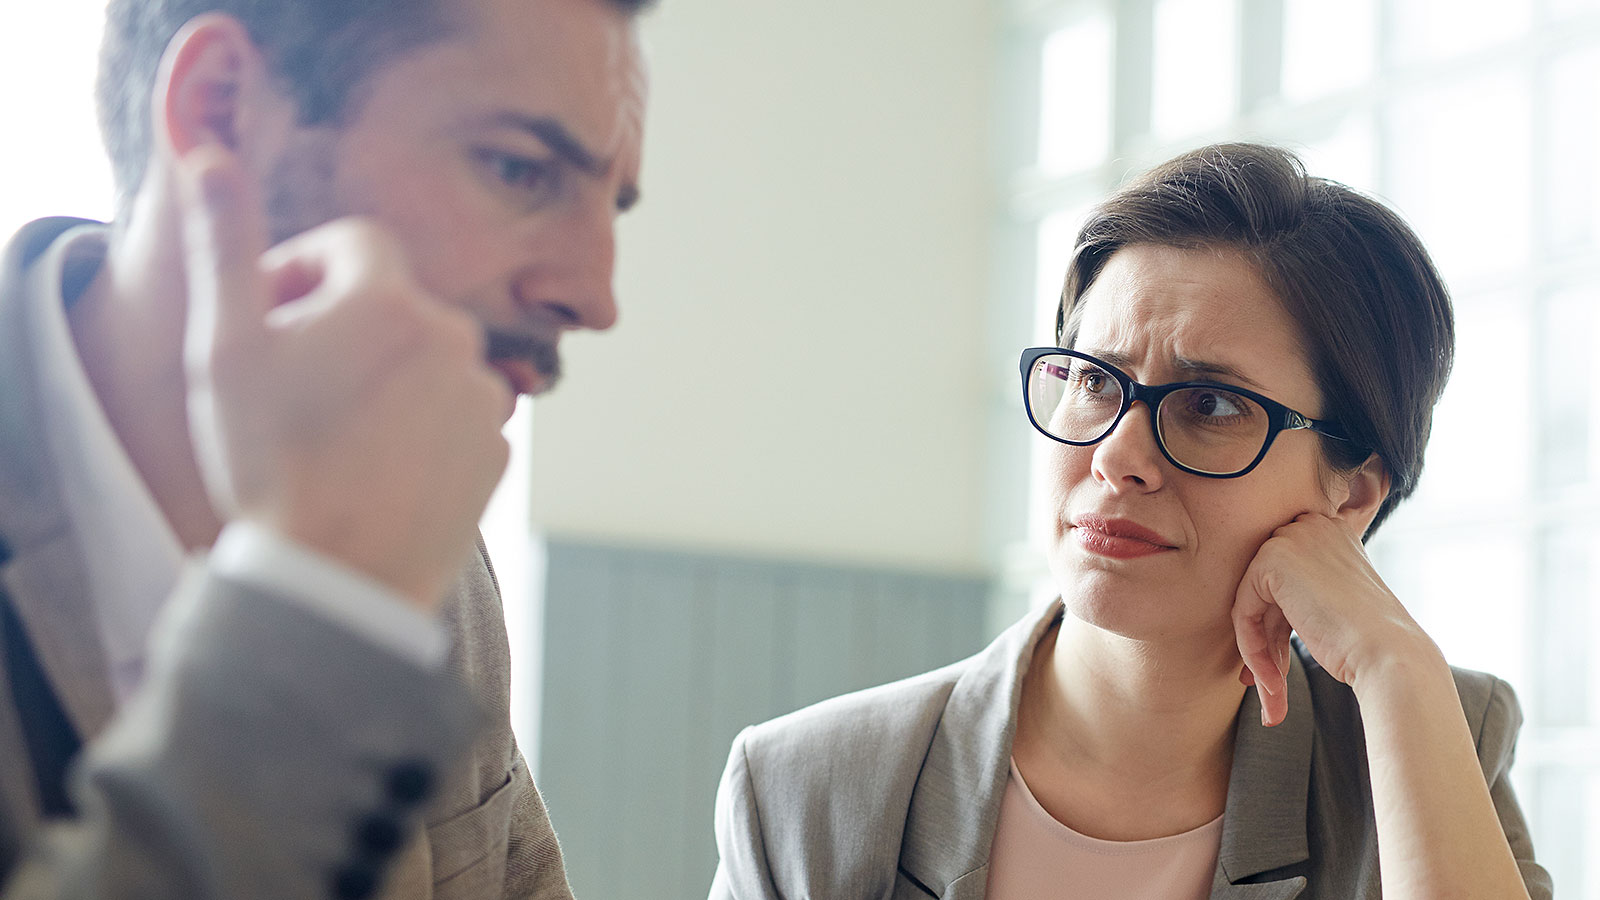 These 5 phrases will make you sound dumb at work